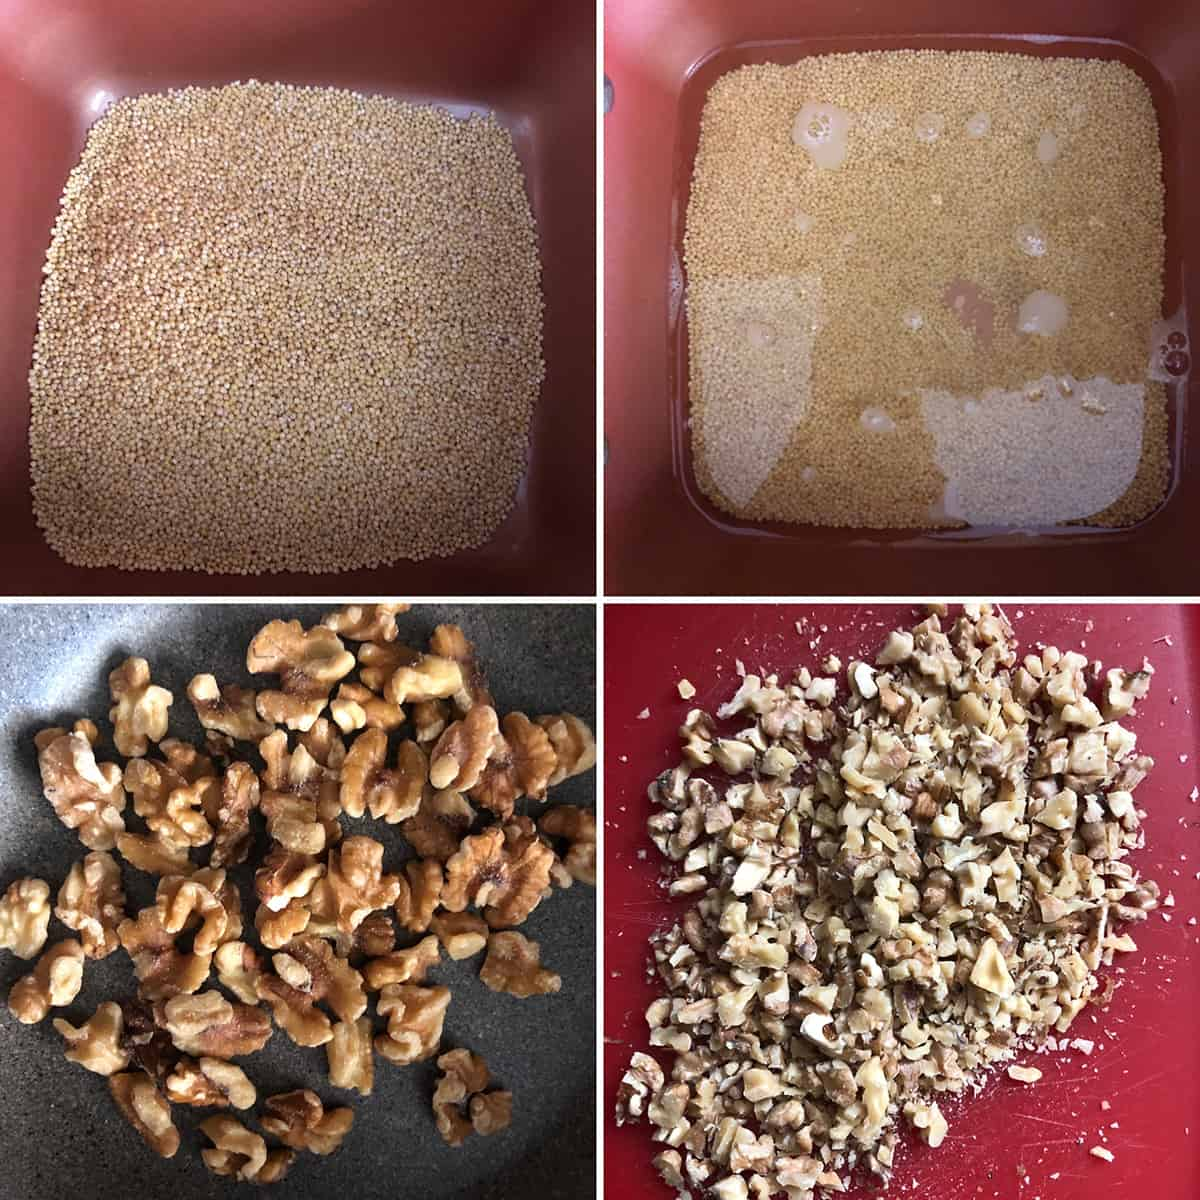 Toasted millet being cooked in water and toasted and chopped walnuts